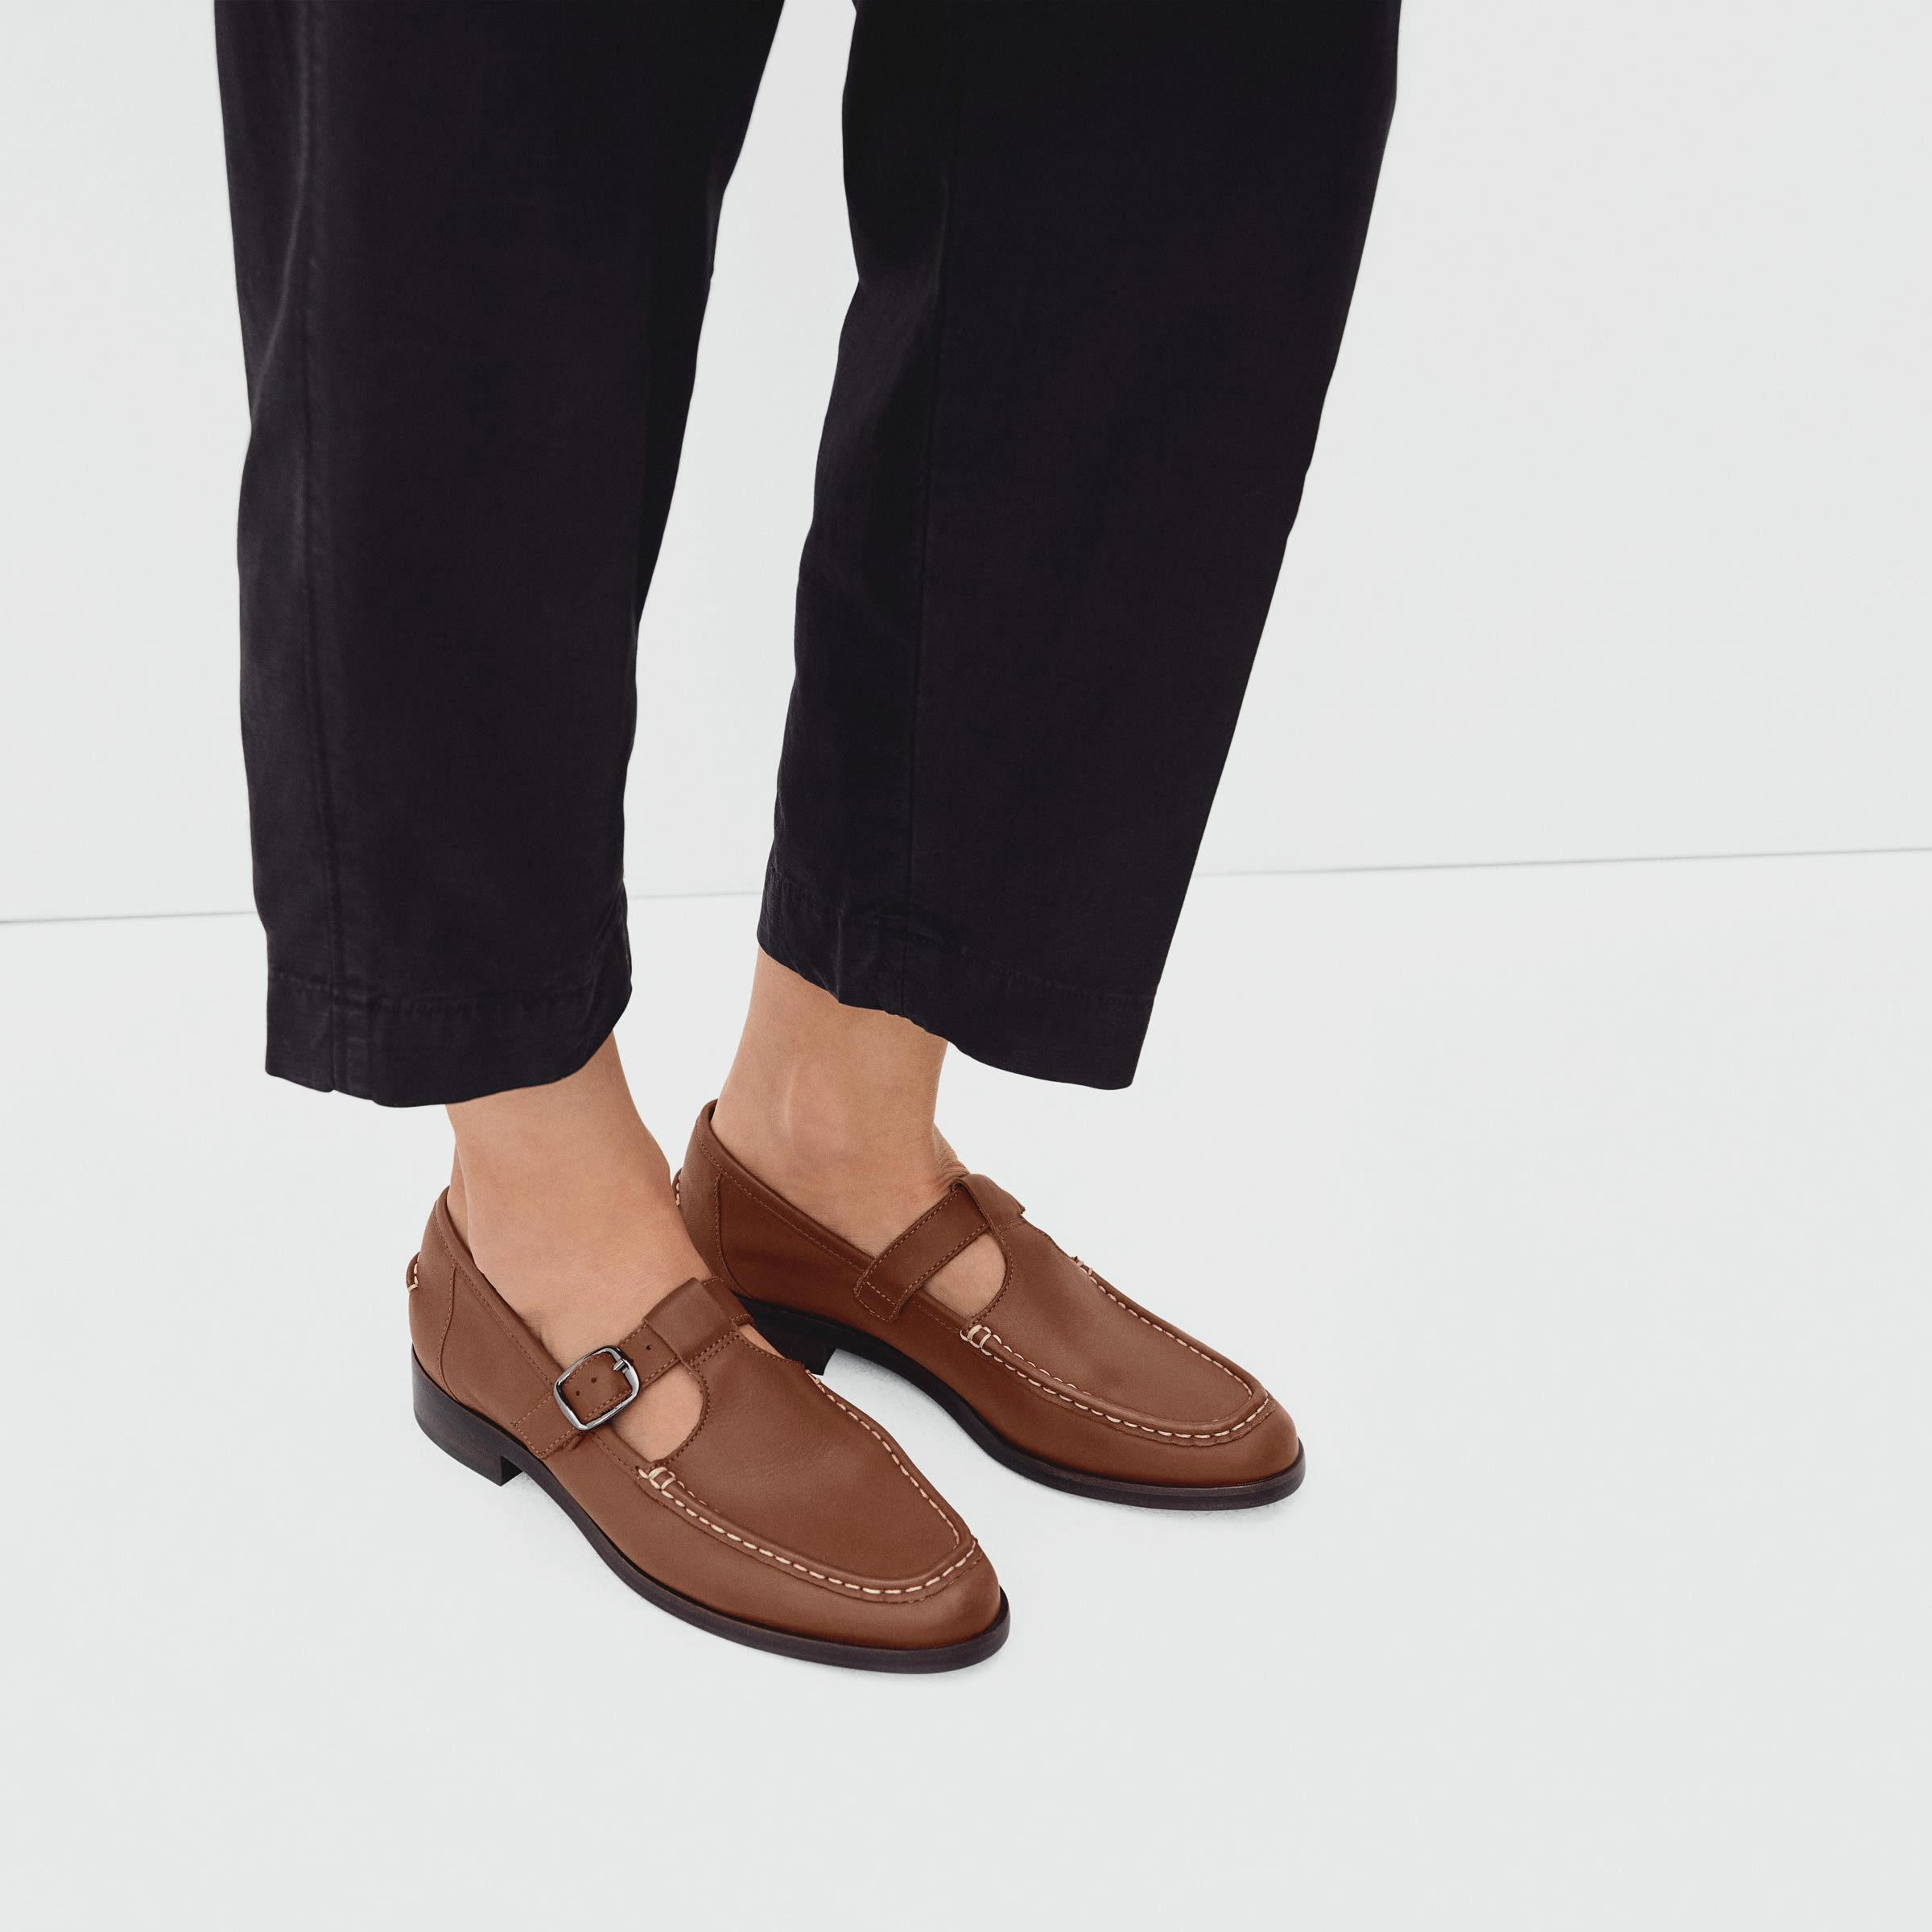 The Mary Jane Loafer